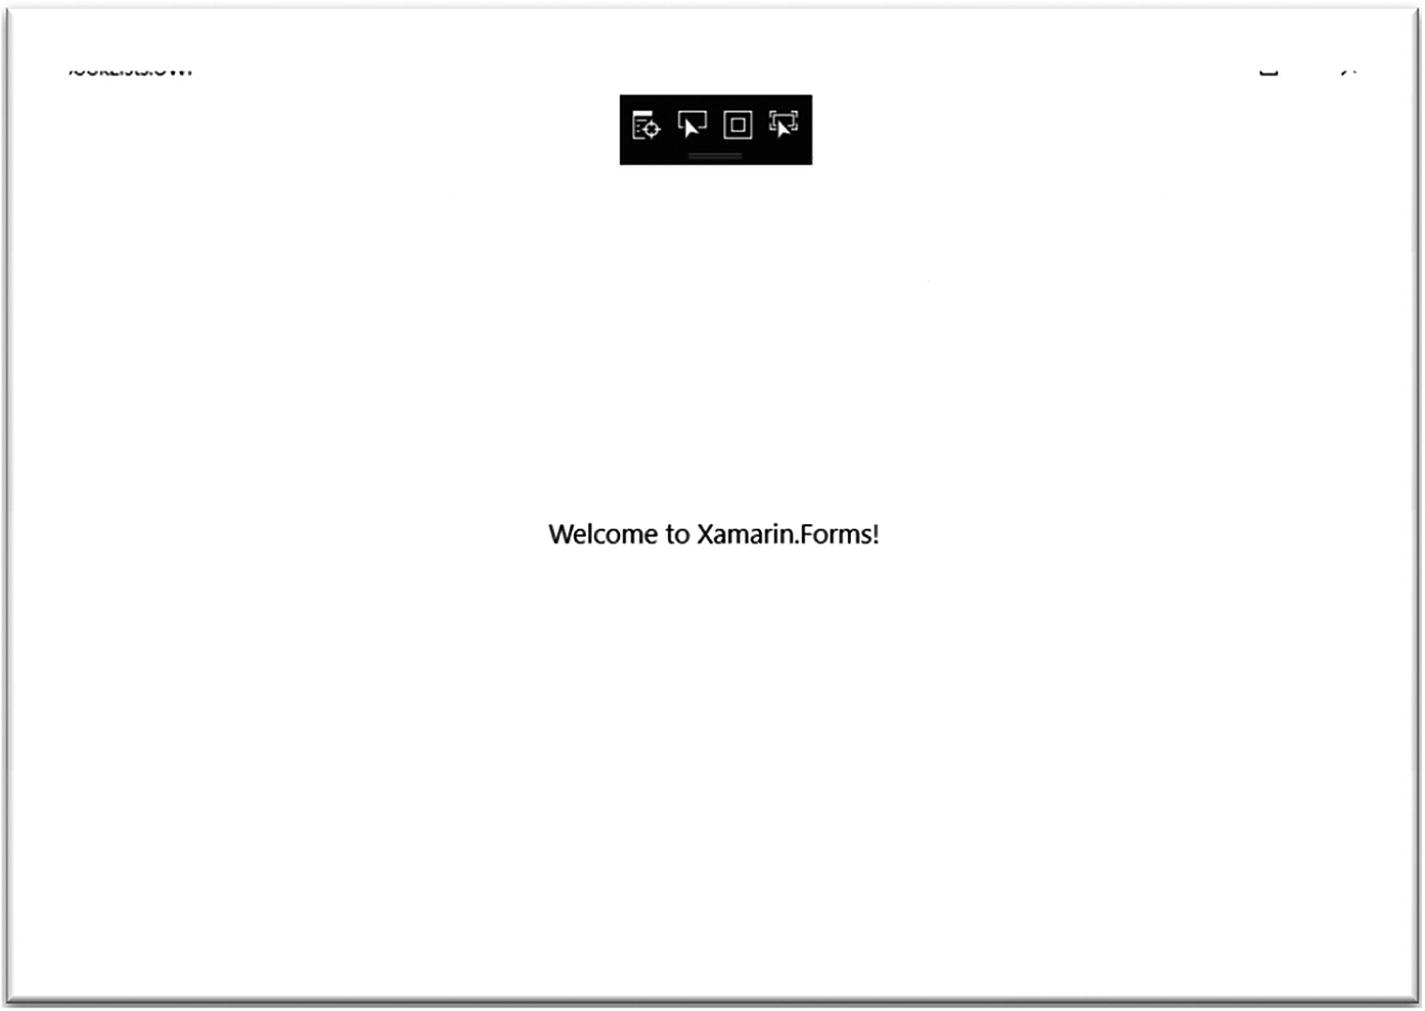 Introduction to Xamarin Forms | SpringerLink